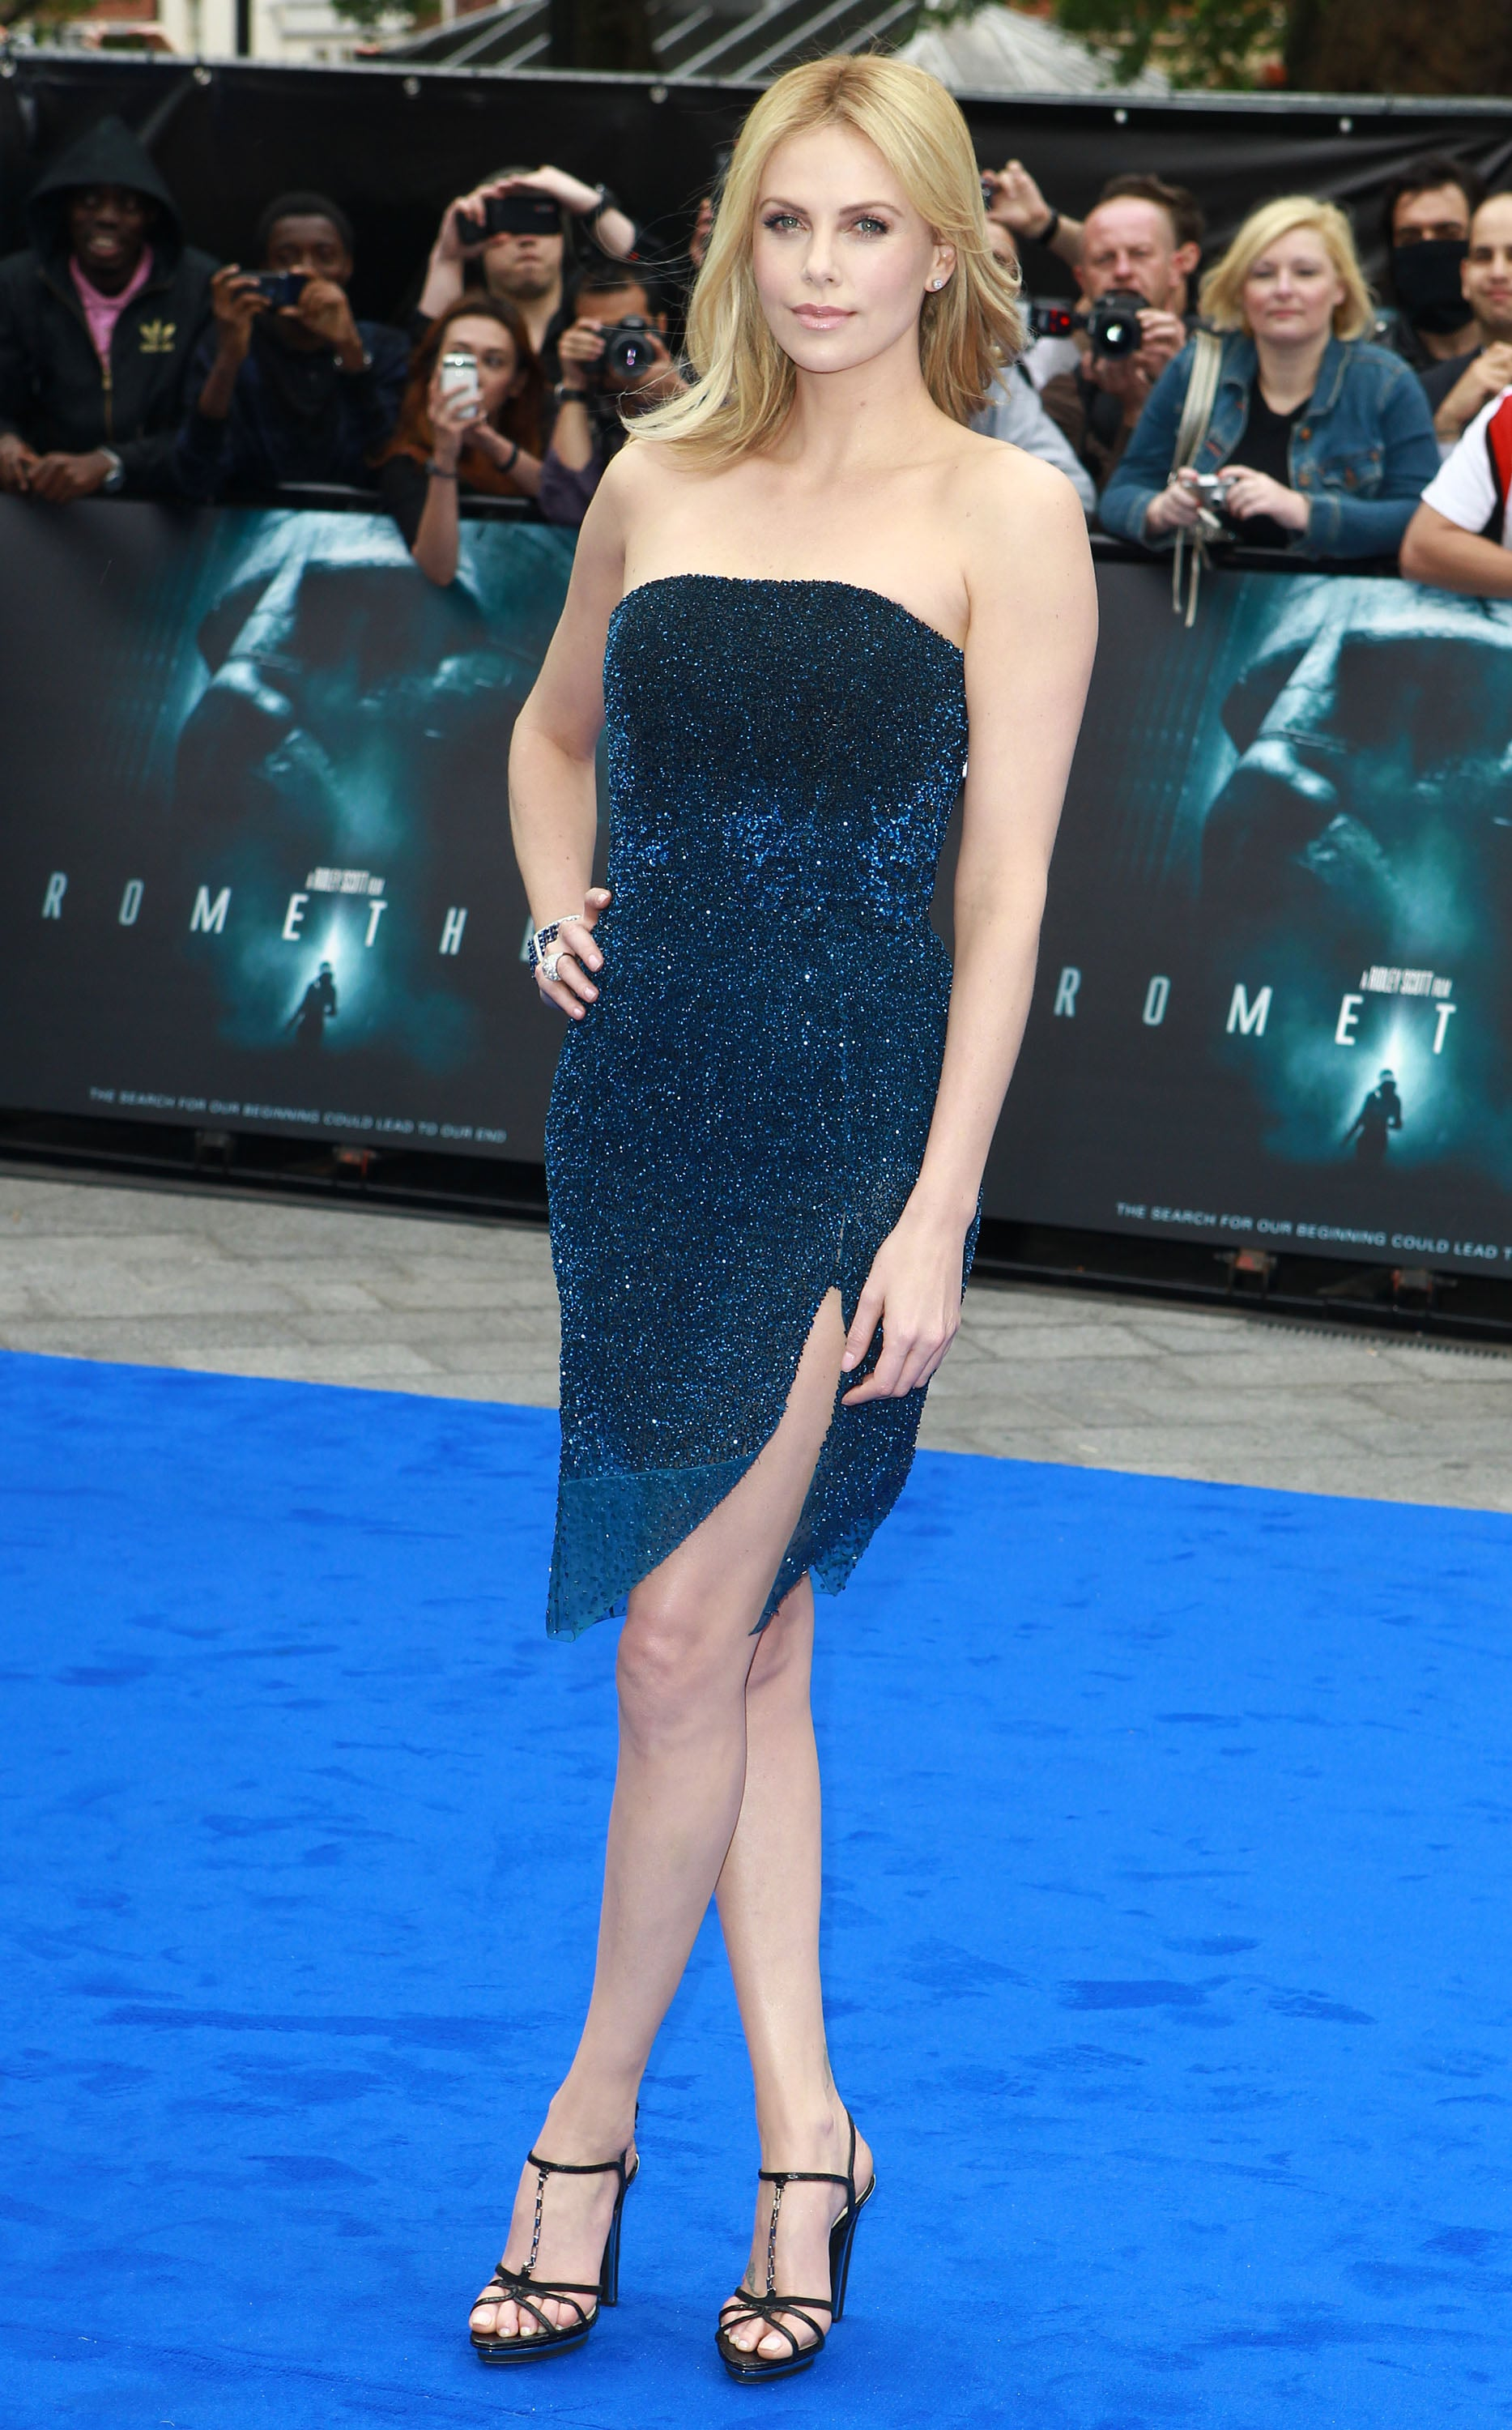 The star stole the spotlight in an electric blue shimmery Christian Dior Couture confection for the premiere of Prometheus.